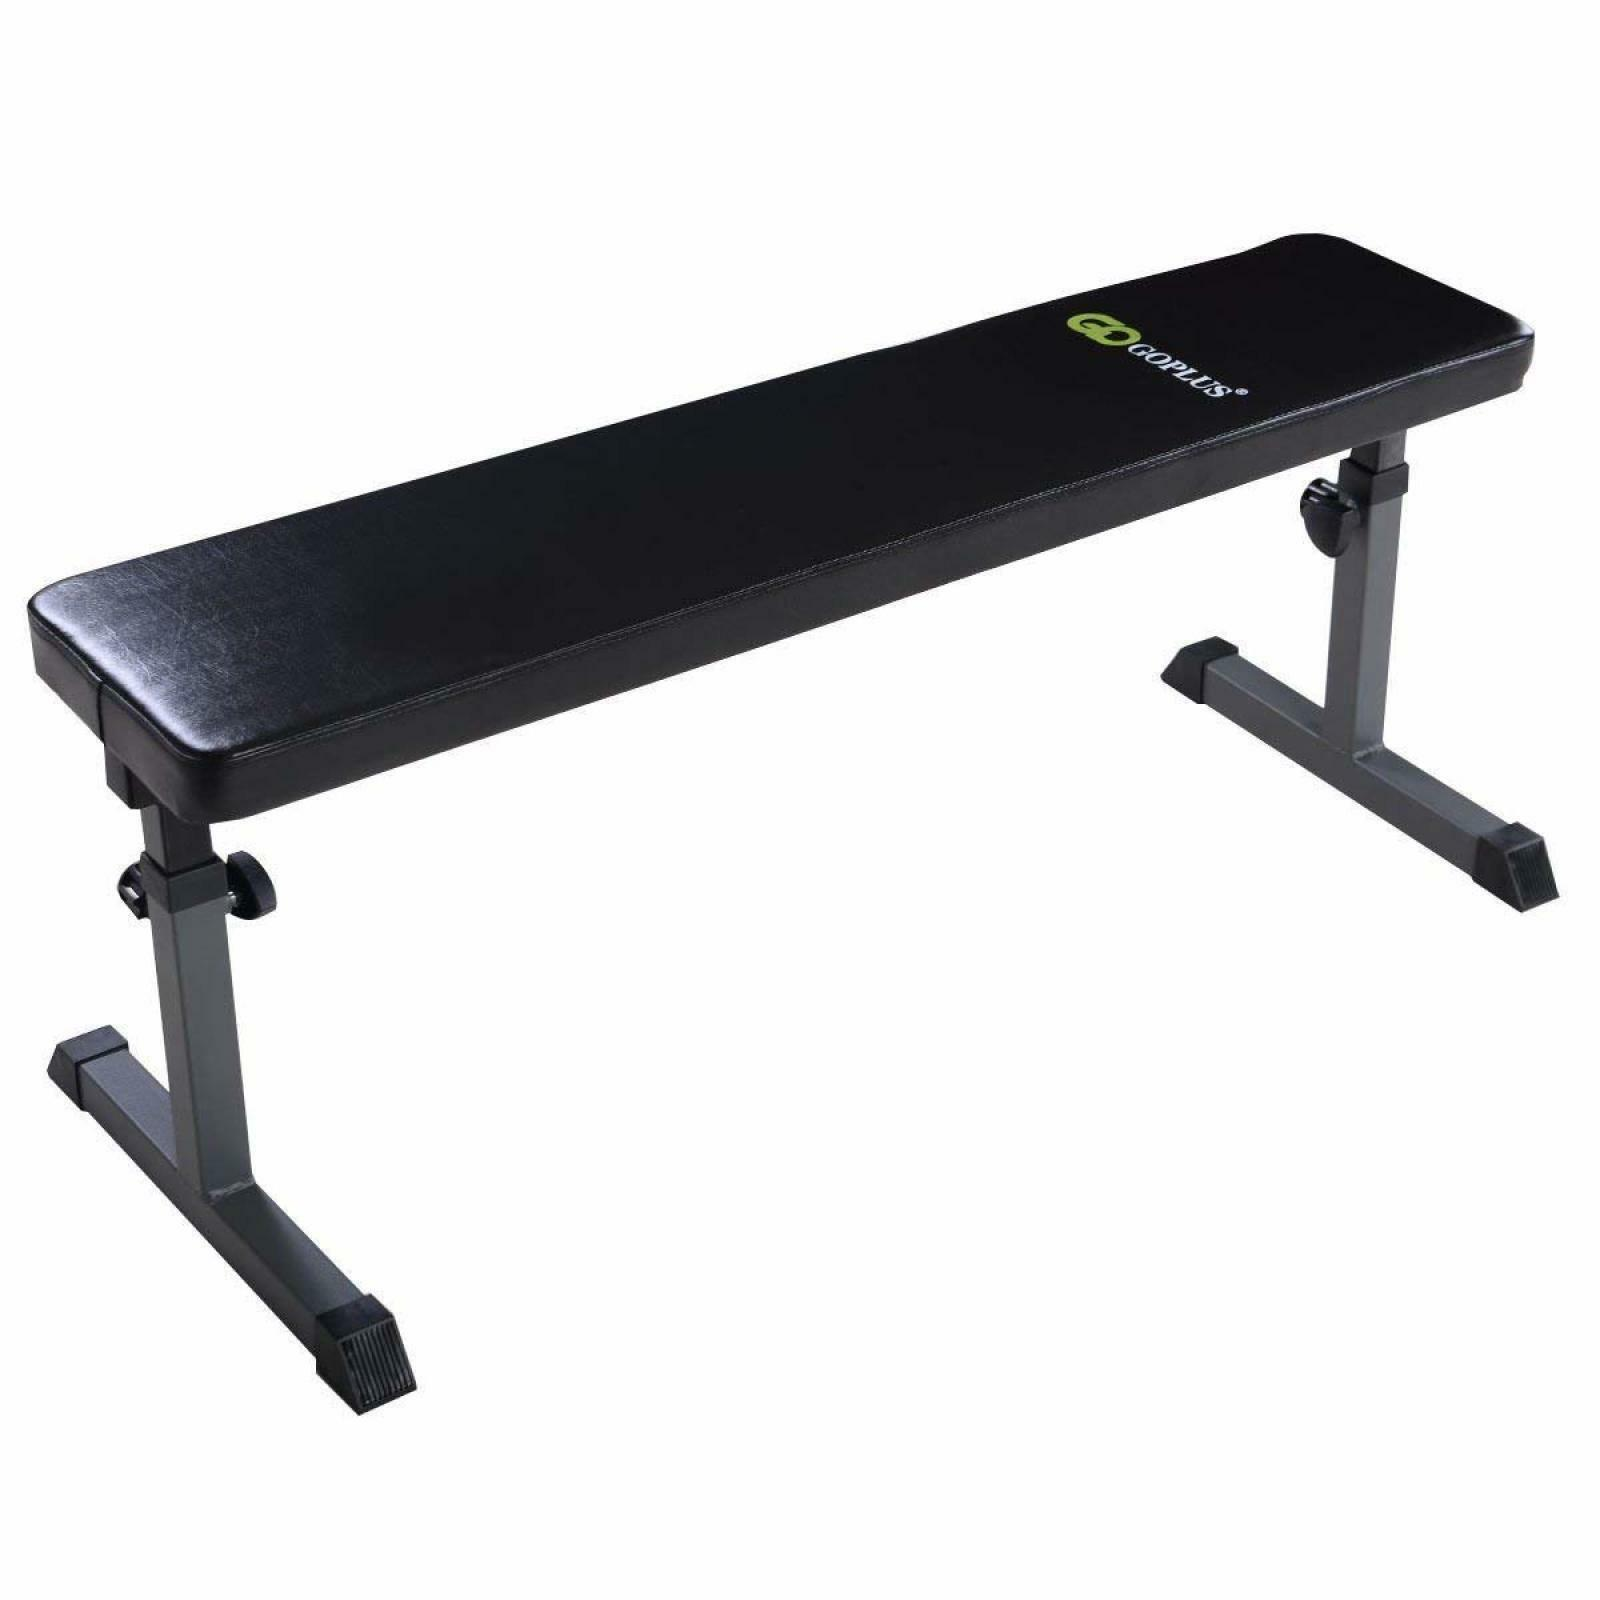 Flat Weight Bench Adjustable Gym Bench Home 440lb Padded Workout Muscles Fitness